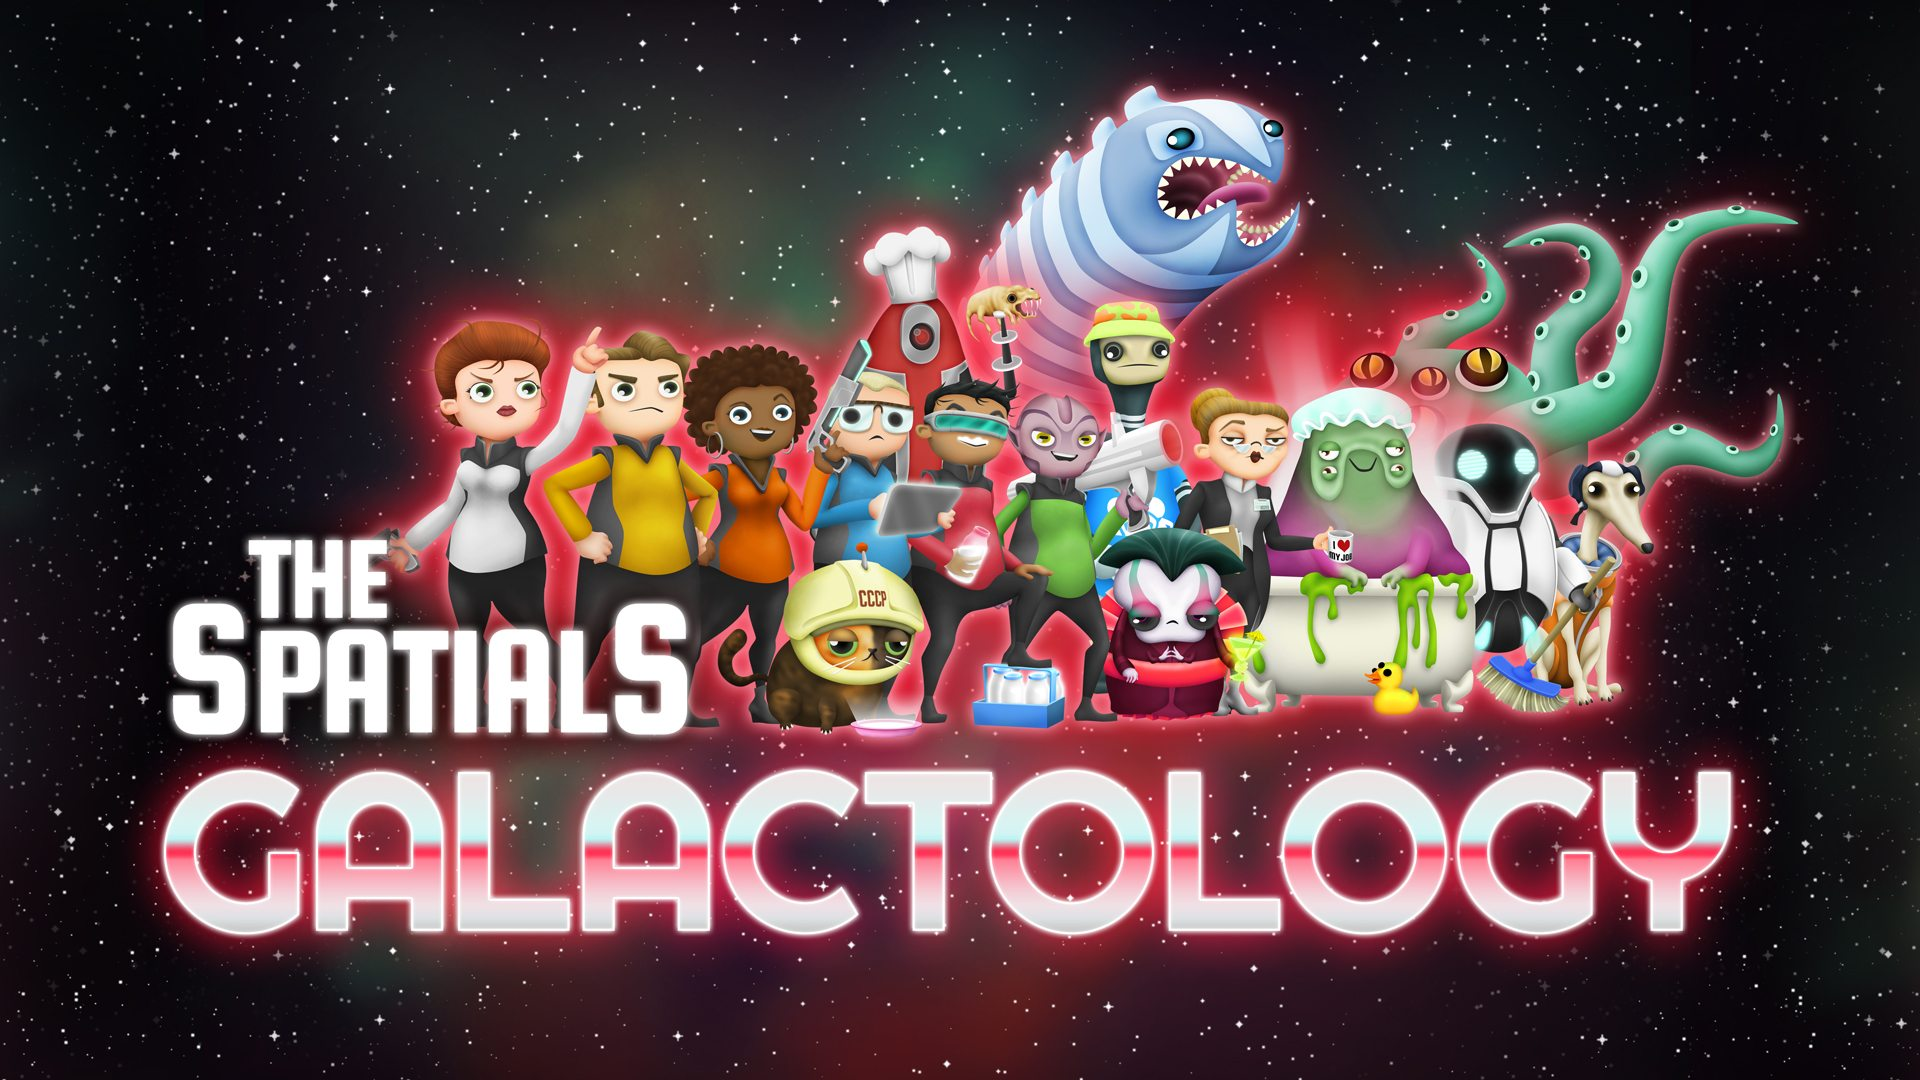 The Spatials: Galactology Heading to Steam Early Access July 7